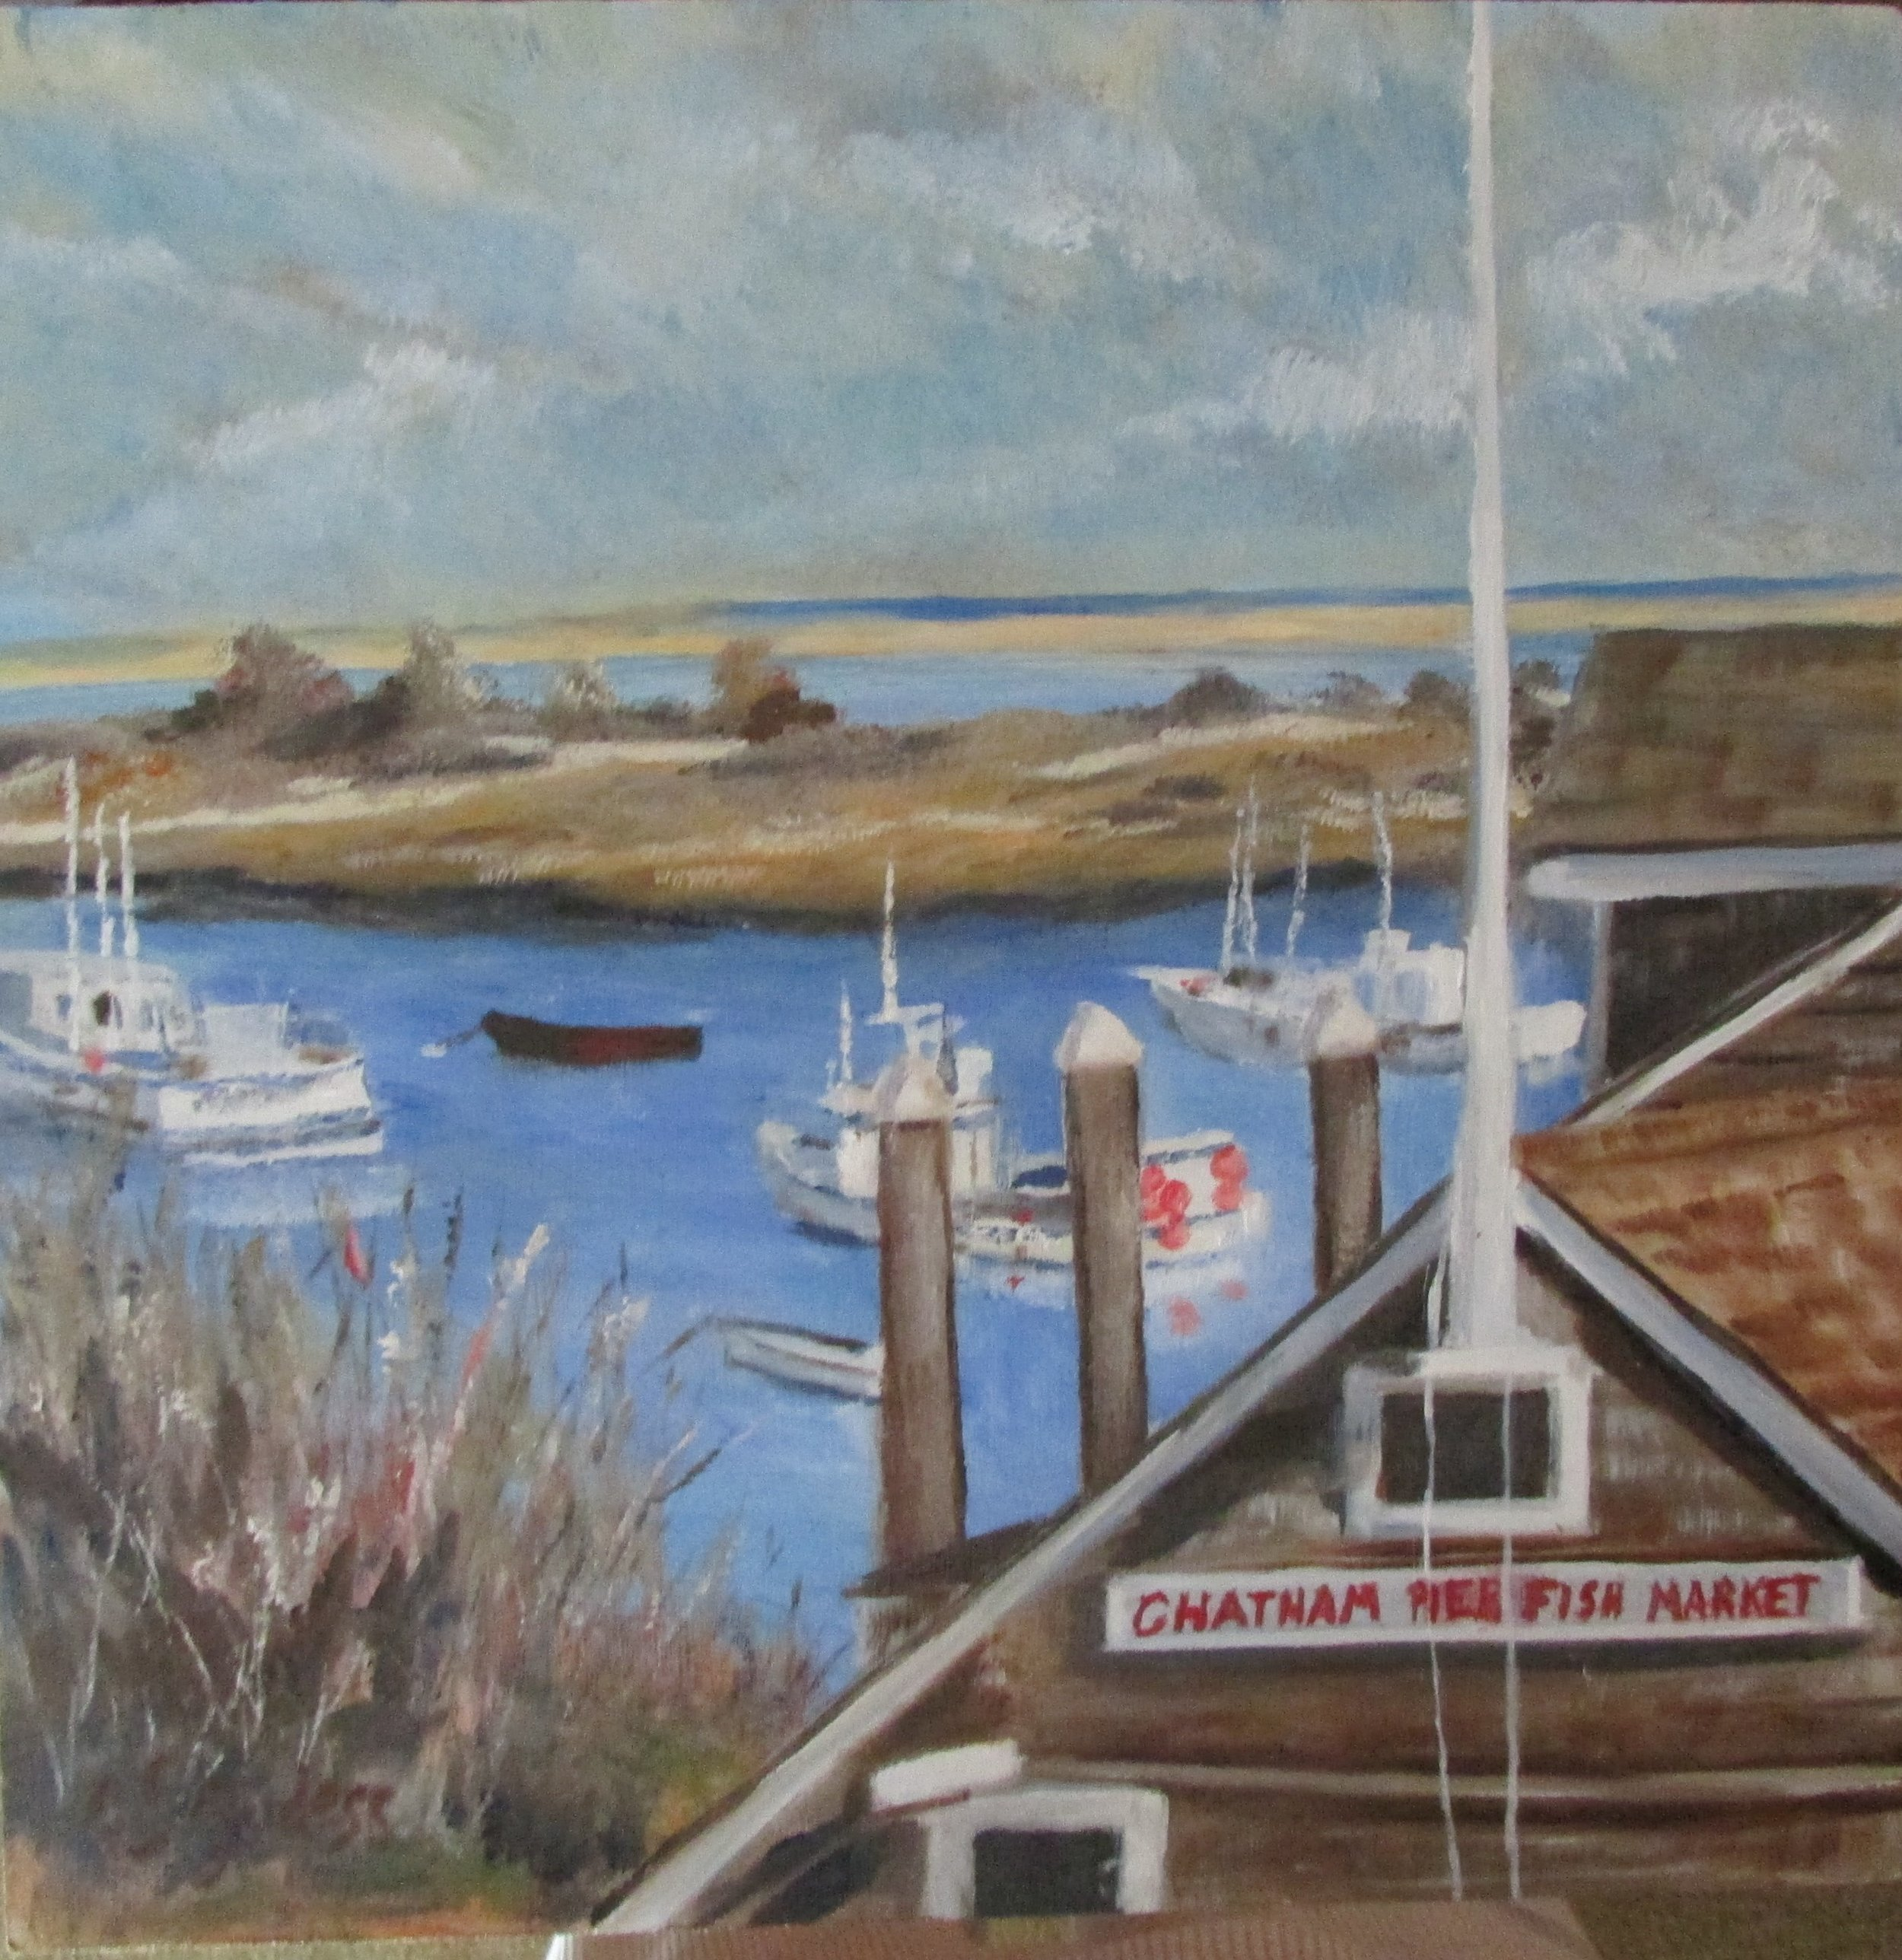 Chatham Fish Market 12x12 Oil $275